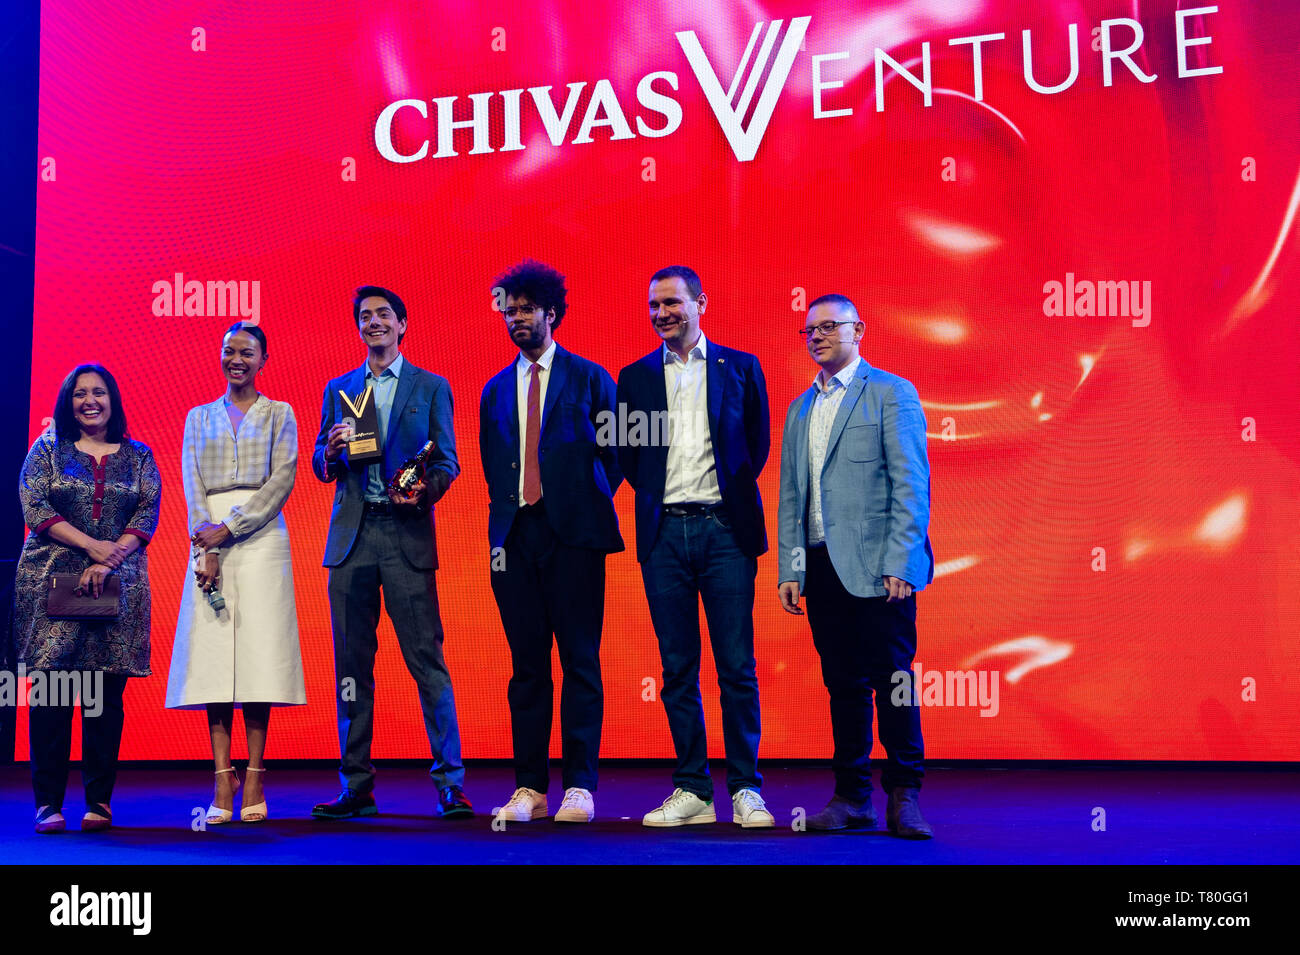 (L to R) Chivas Venture judge and Executive Director of the Beeck Center for Social Impact and innovation Sonal Shah, Chivas Venture Judge Zoe Saldana, Chivas Venture Award Winner Javier Larragoiti of Xilinat, BAFTA winning actor Richard Ayoade, Alexandre Ricard chairman and CEO of Pernod Ricard and Chivas Venture judge and Founder of Change Please Cemal Ezel seen posing for a group photo at the Chivas Venture Global Final at TNW Conference. The 14th edition of the TNW conference was inaugurated in Amsterdam at the NDSM, a creative hub for artists and entrepreneurs. Every year, this global com - Stock Image